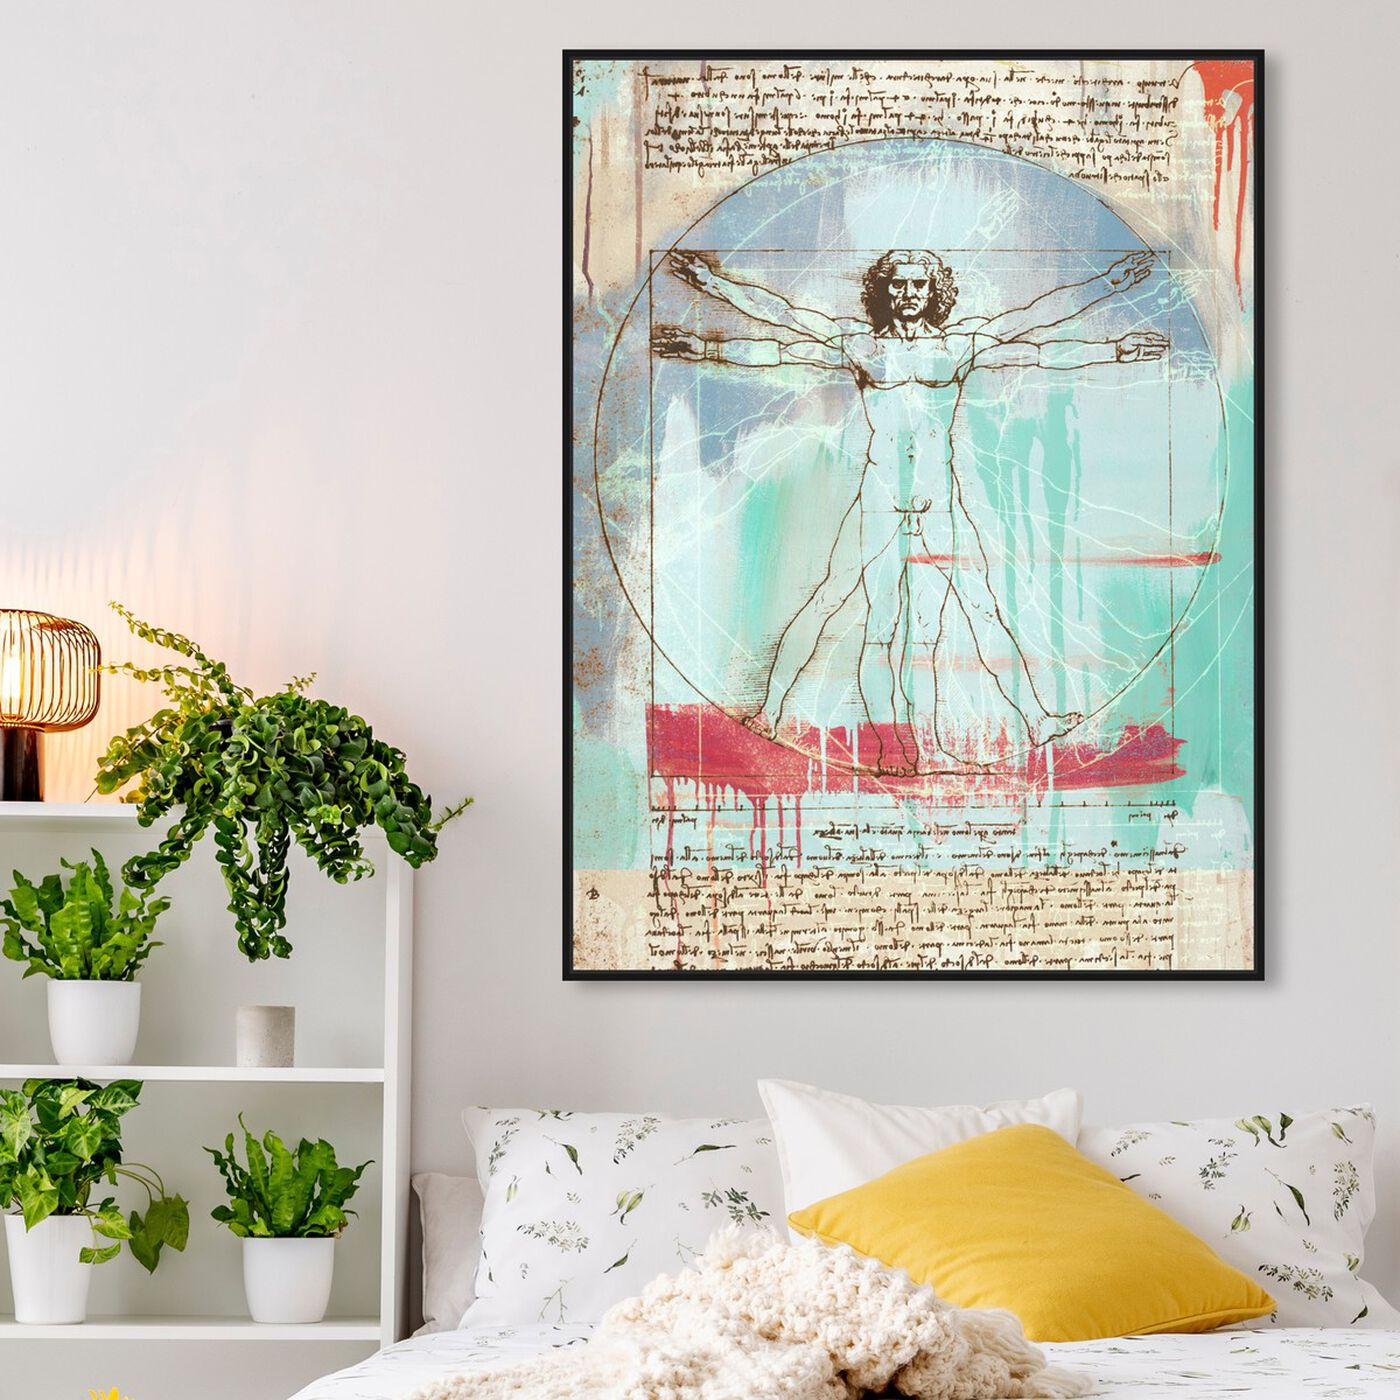 Hanging view of Sai - Vitruvian Man 3EH2821 featuring education and office and scientist art.